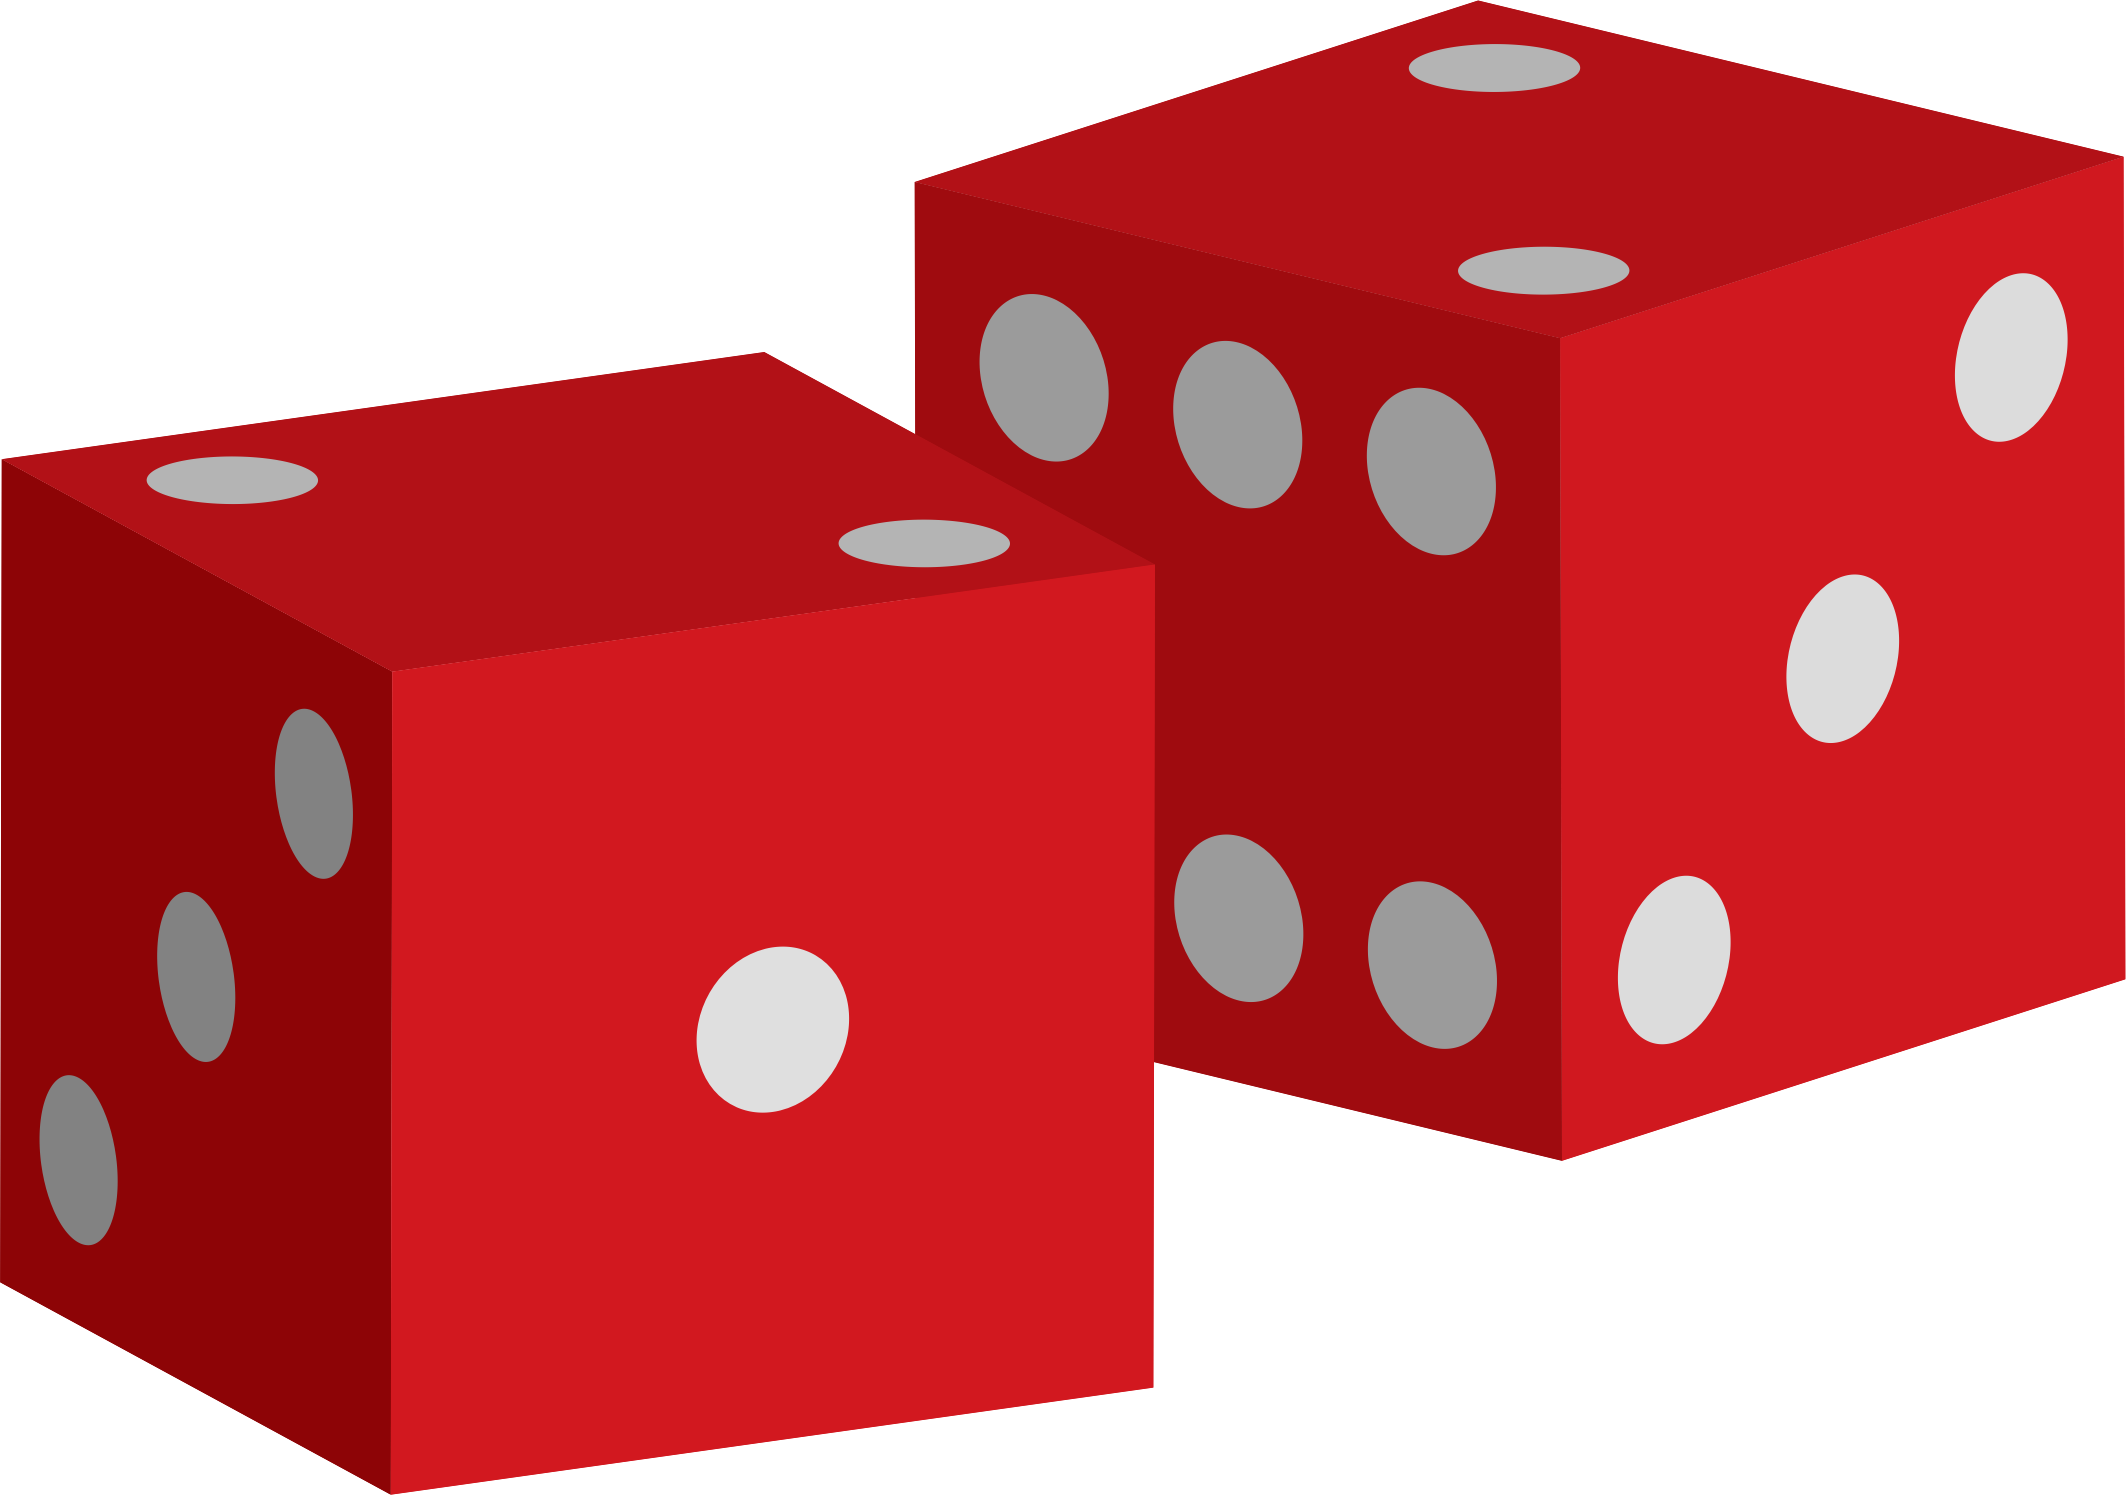 Dice clipart 2 dice. Two red big image